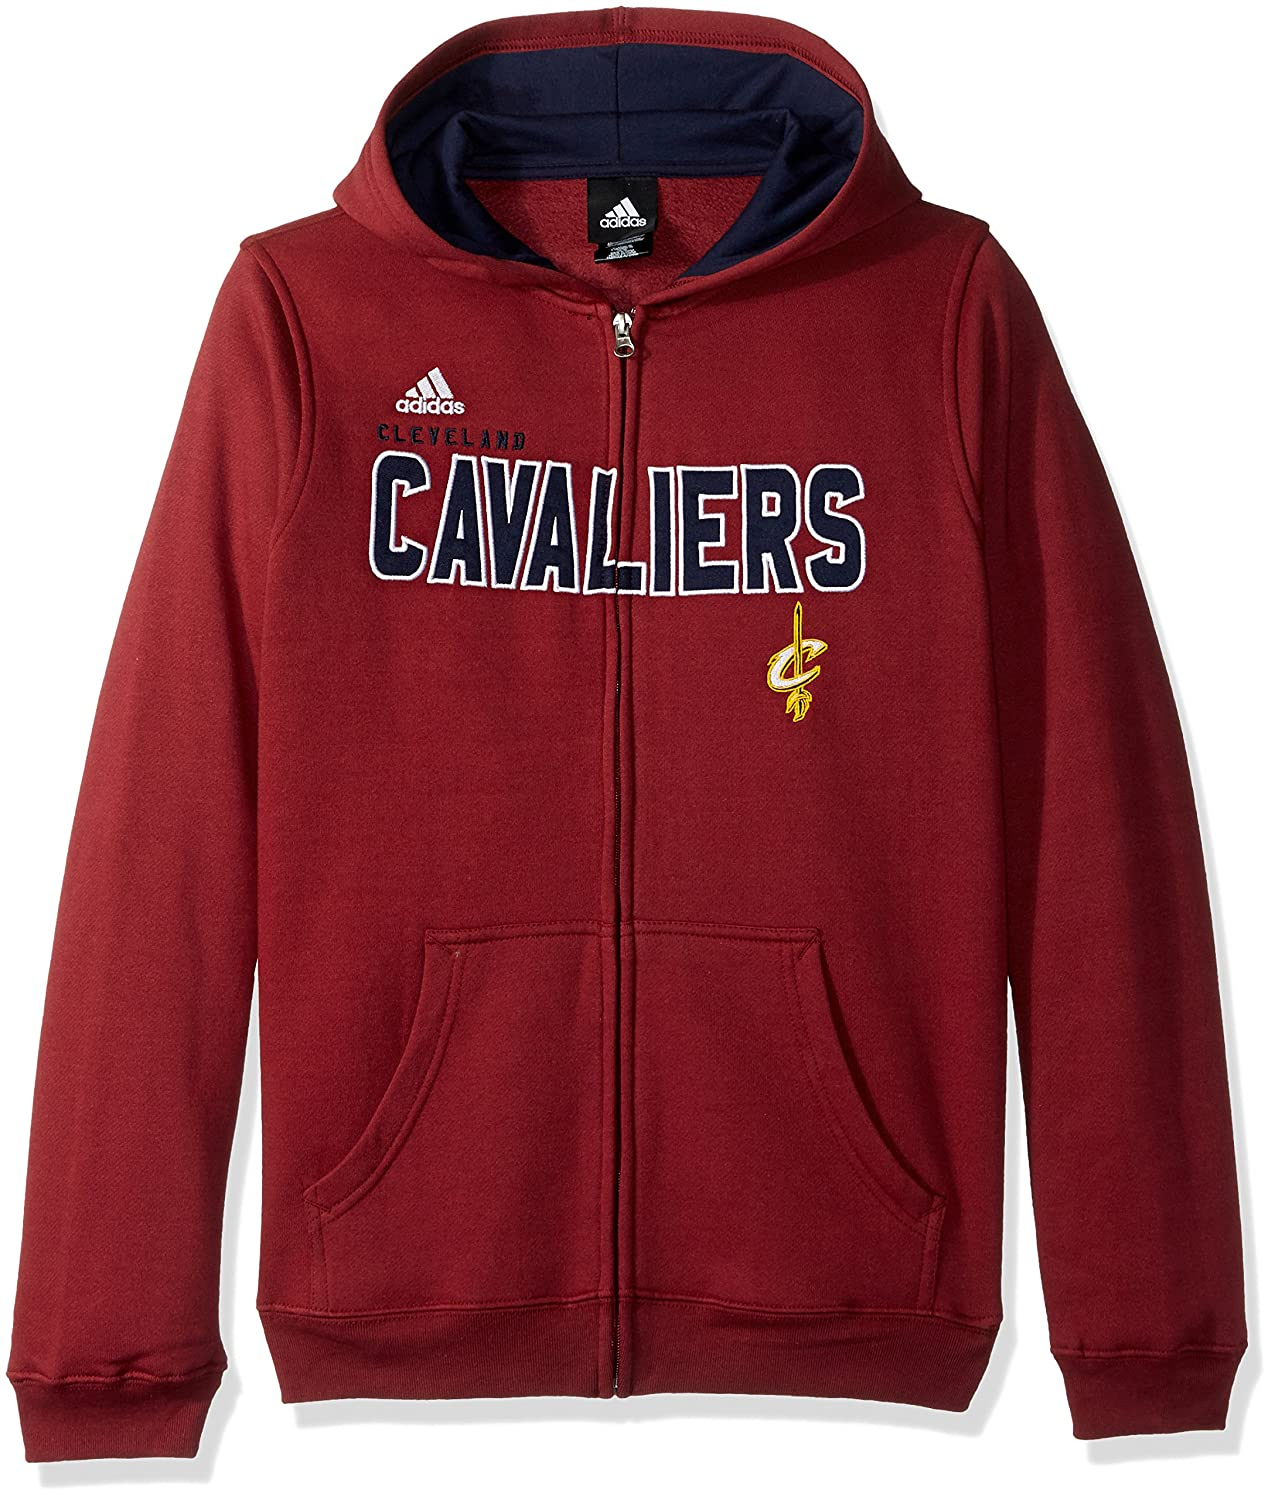 Cleveland Cavaliers Youth Kinder NBA Adidas